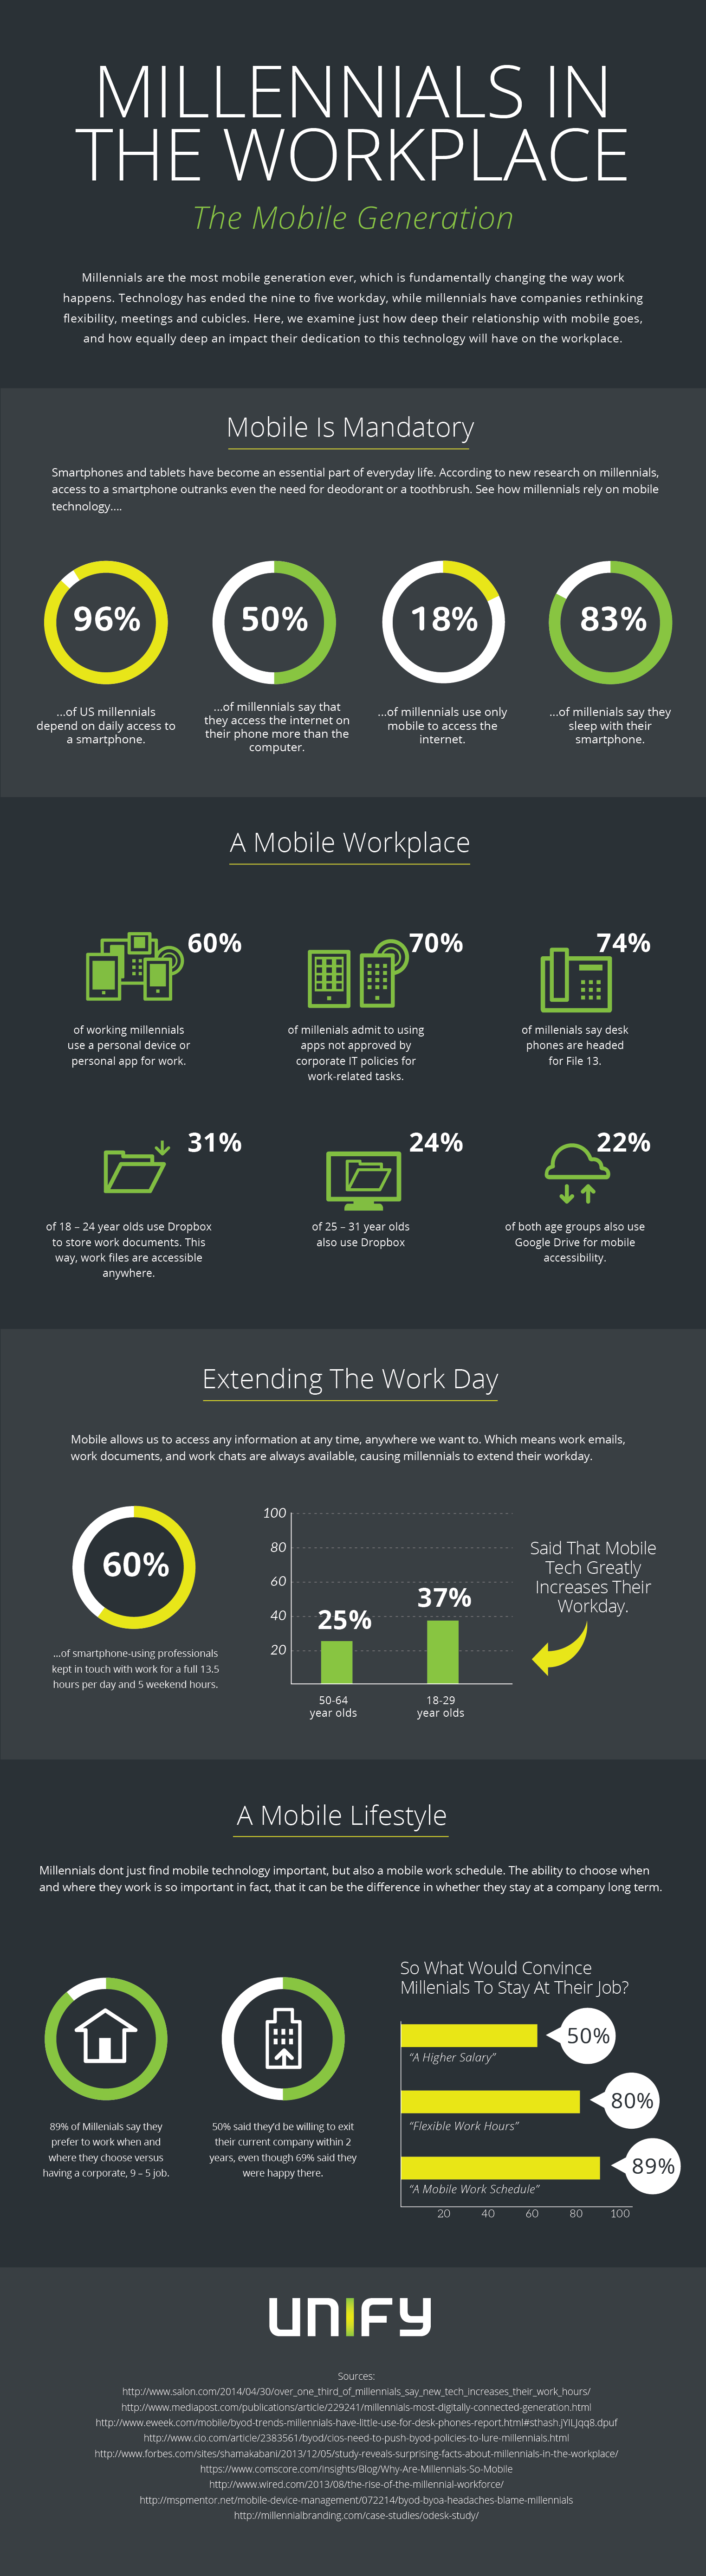 Millennials In The Workplace The Mobile Generation Infographic Generations In The Workplace Workplace Generation